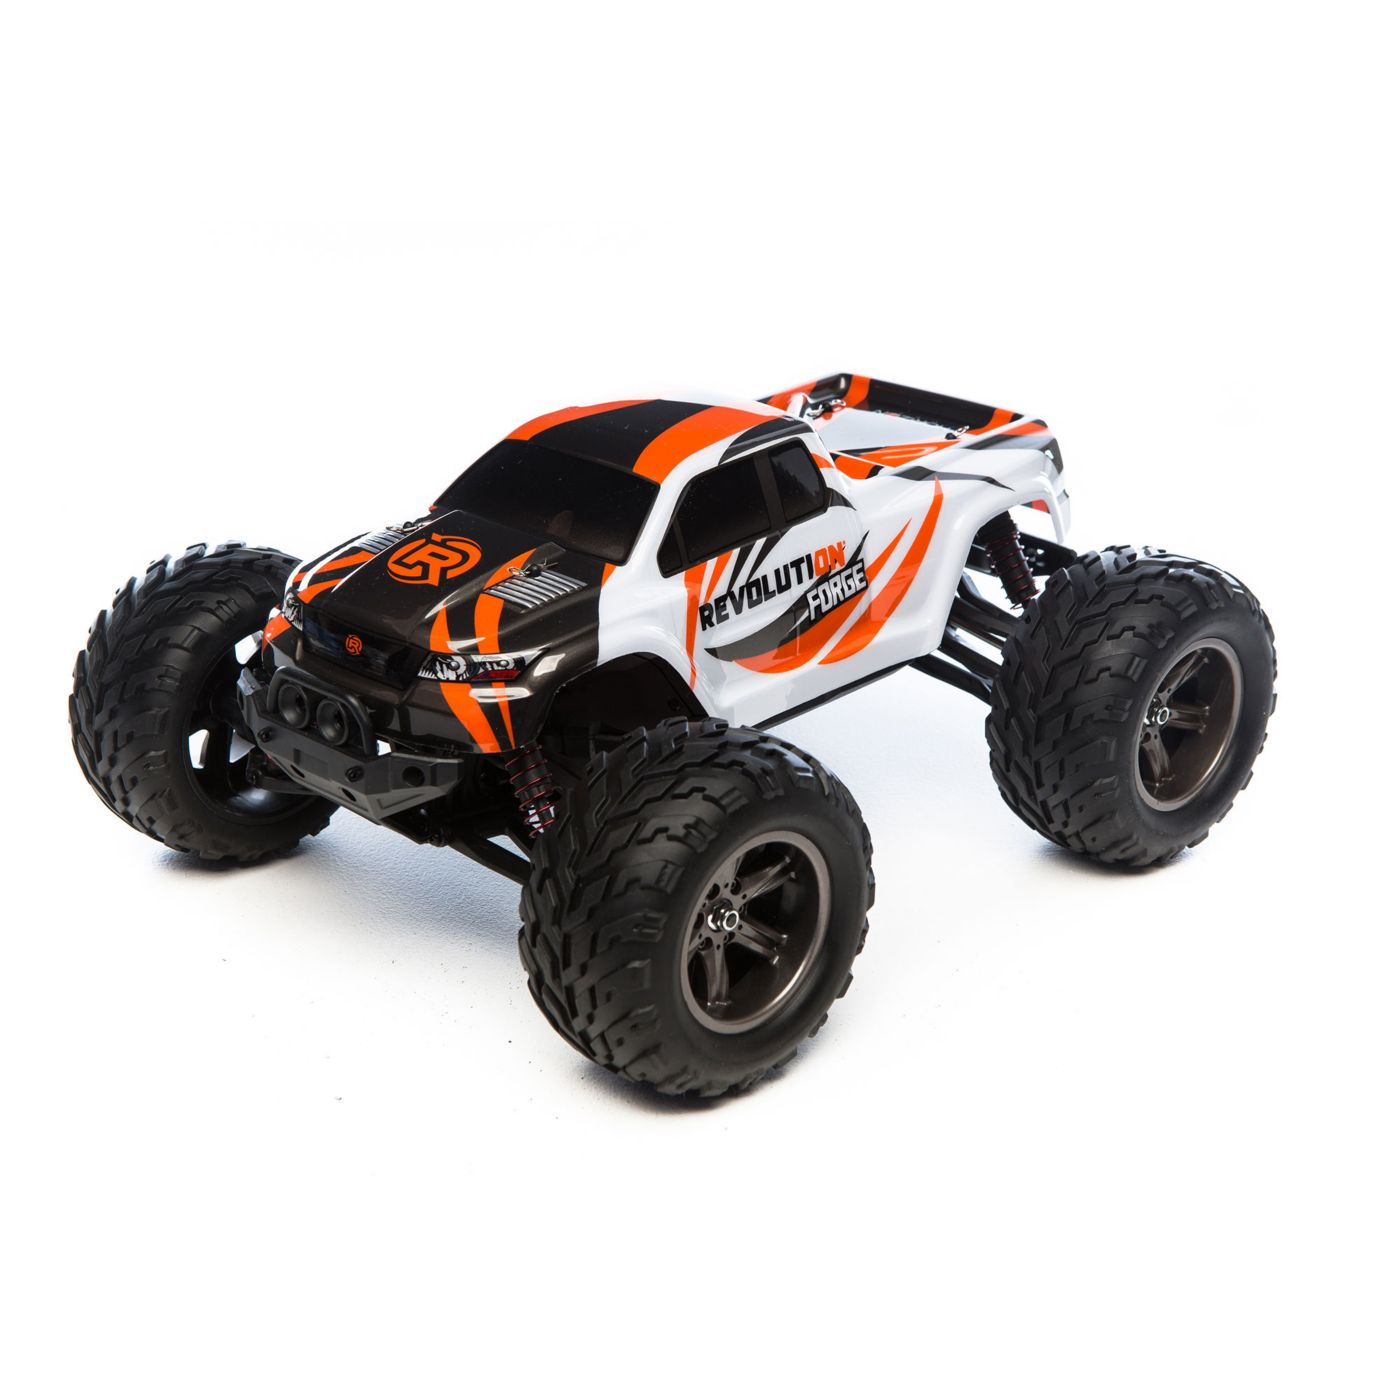 1/12 Forge 2WD Monster Truck RTR, Grey/Orange (RVOS02000T1)